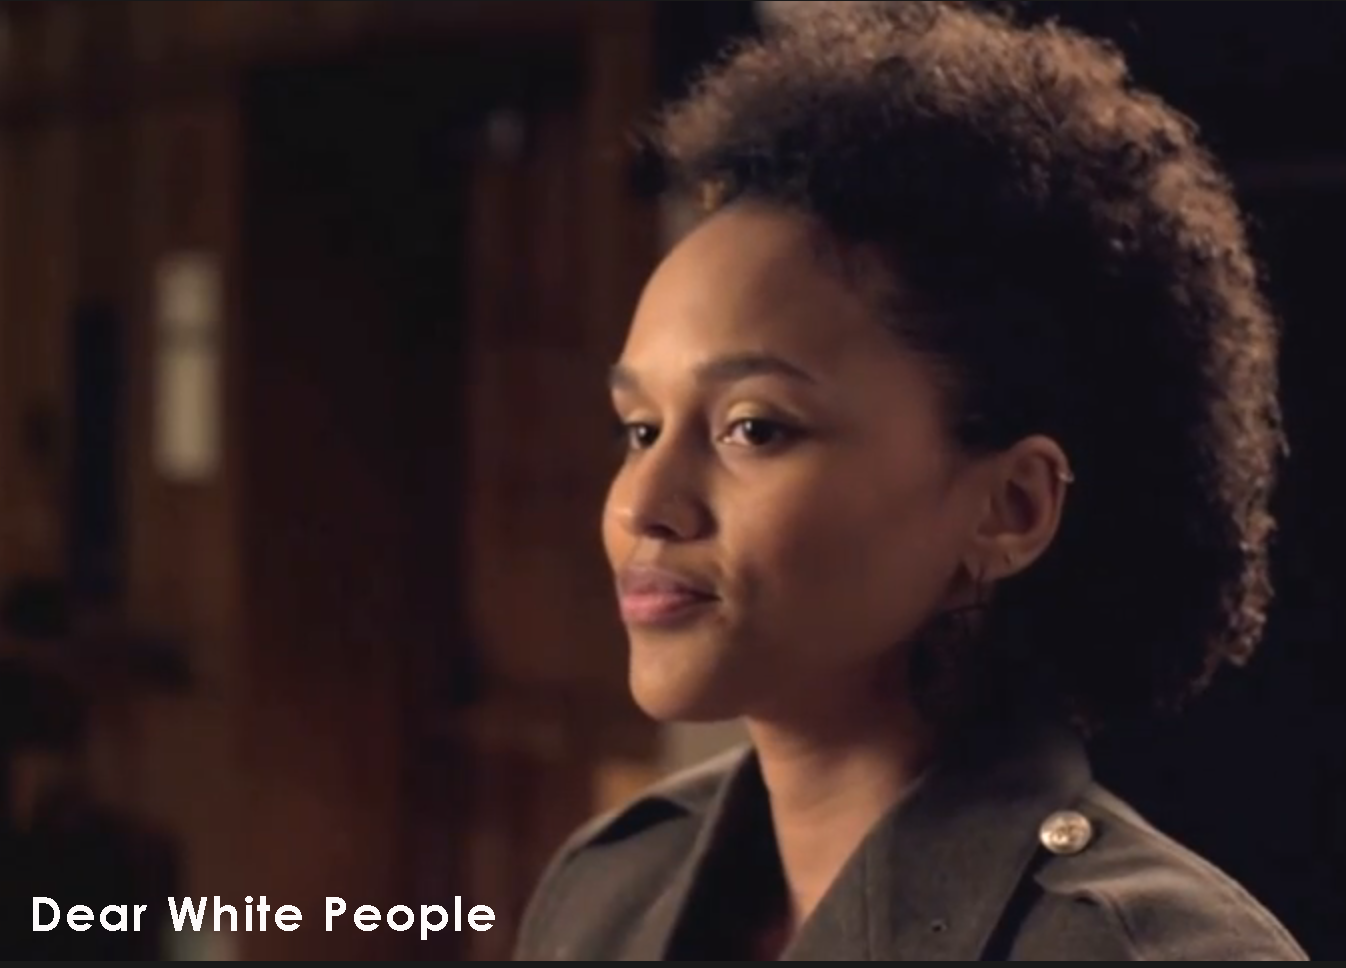 dear-whitepeople copy.png